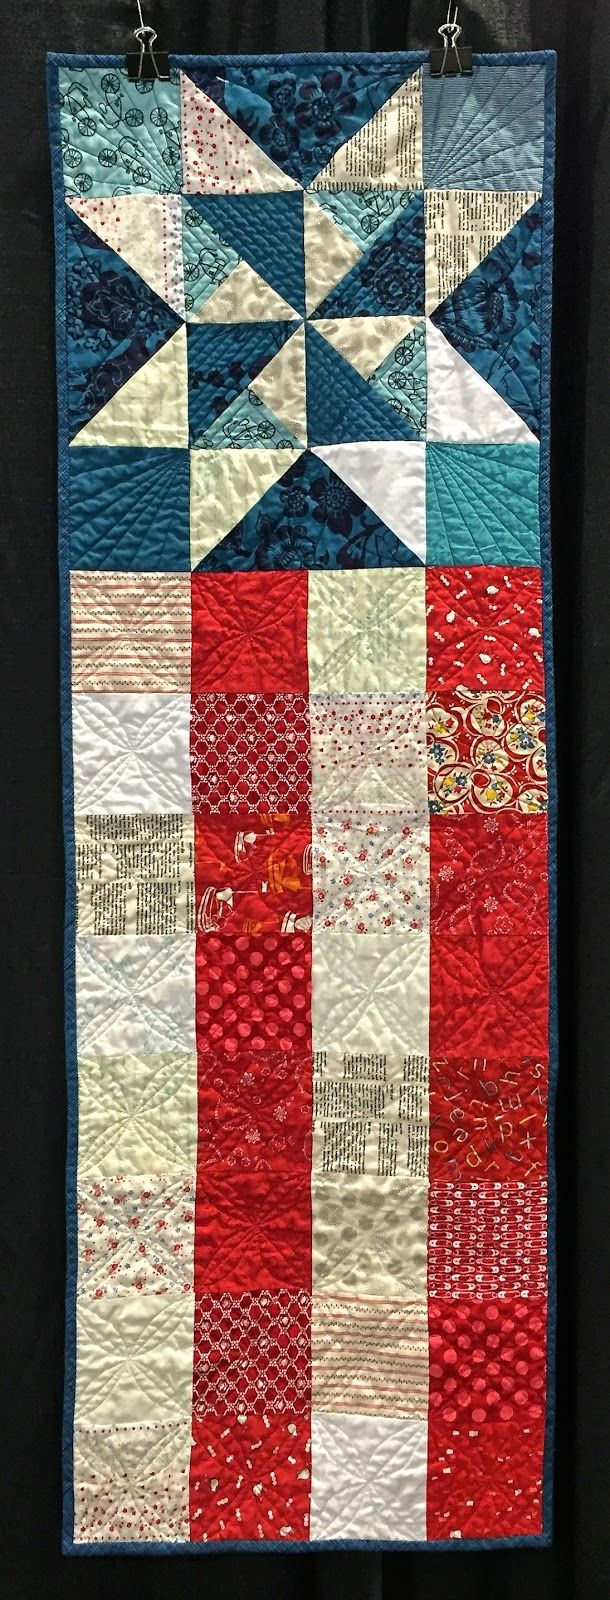 Spools doll quilt table runner wall hanging lyn brown s quilting - A Gallery Of Quilts From Our Quilt Shows Oklahoma City Winter Quilt Show 2016 2016